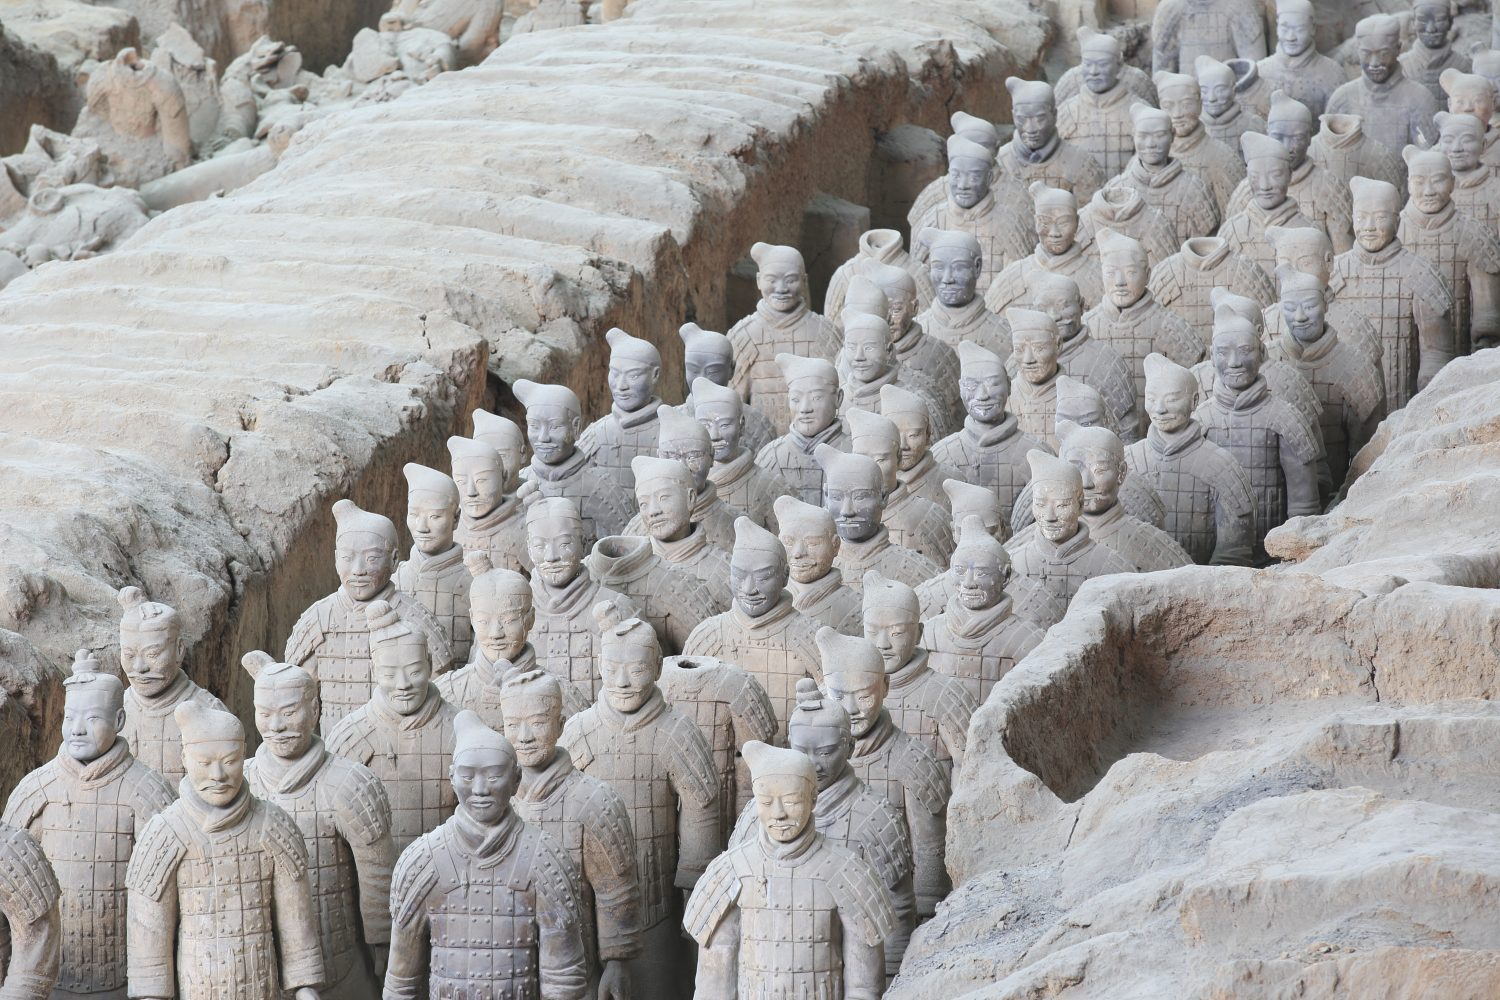 terra cotta warriors xi'an - China travel packages